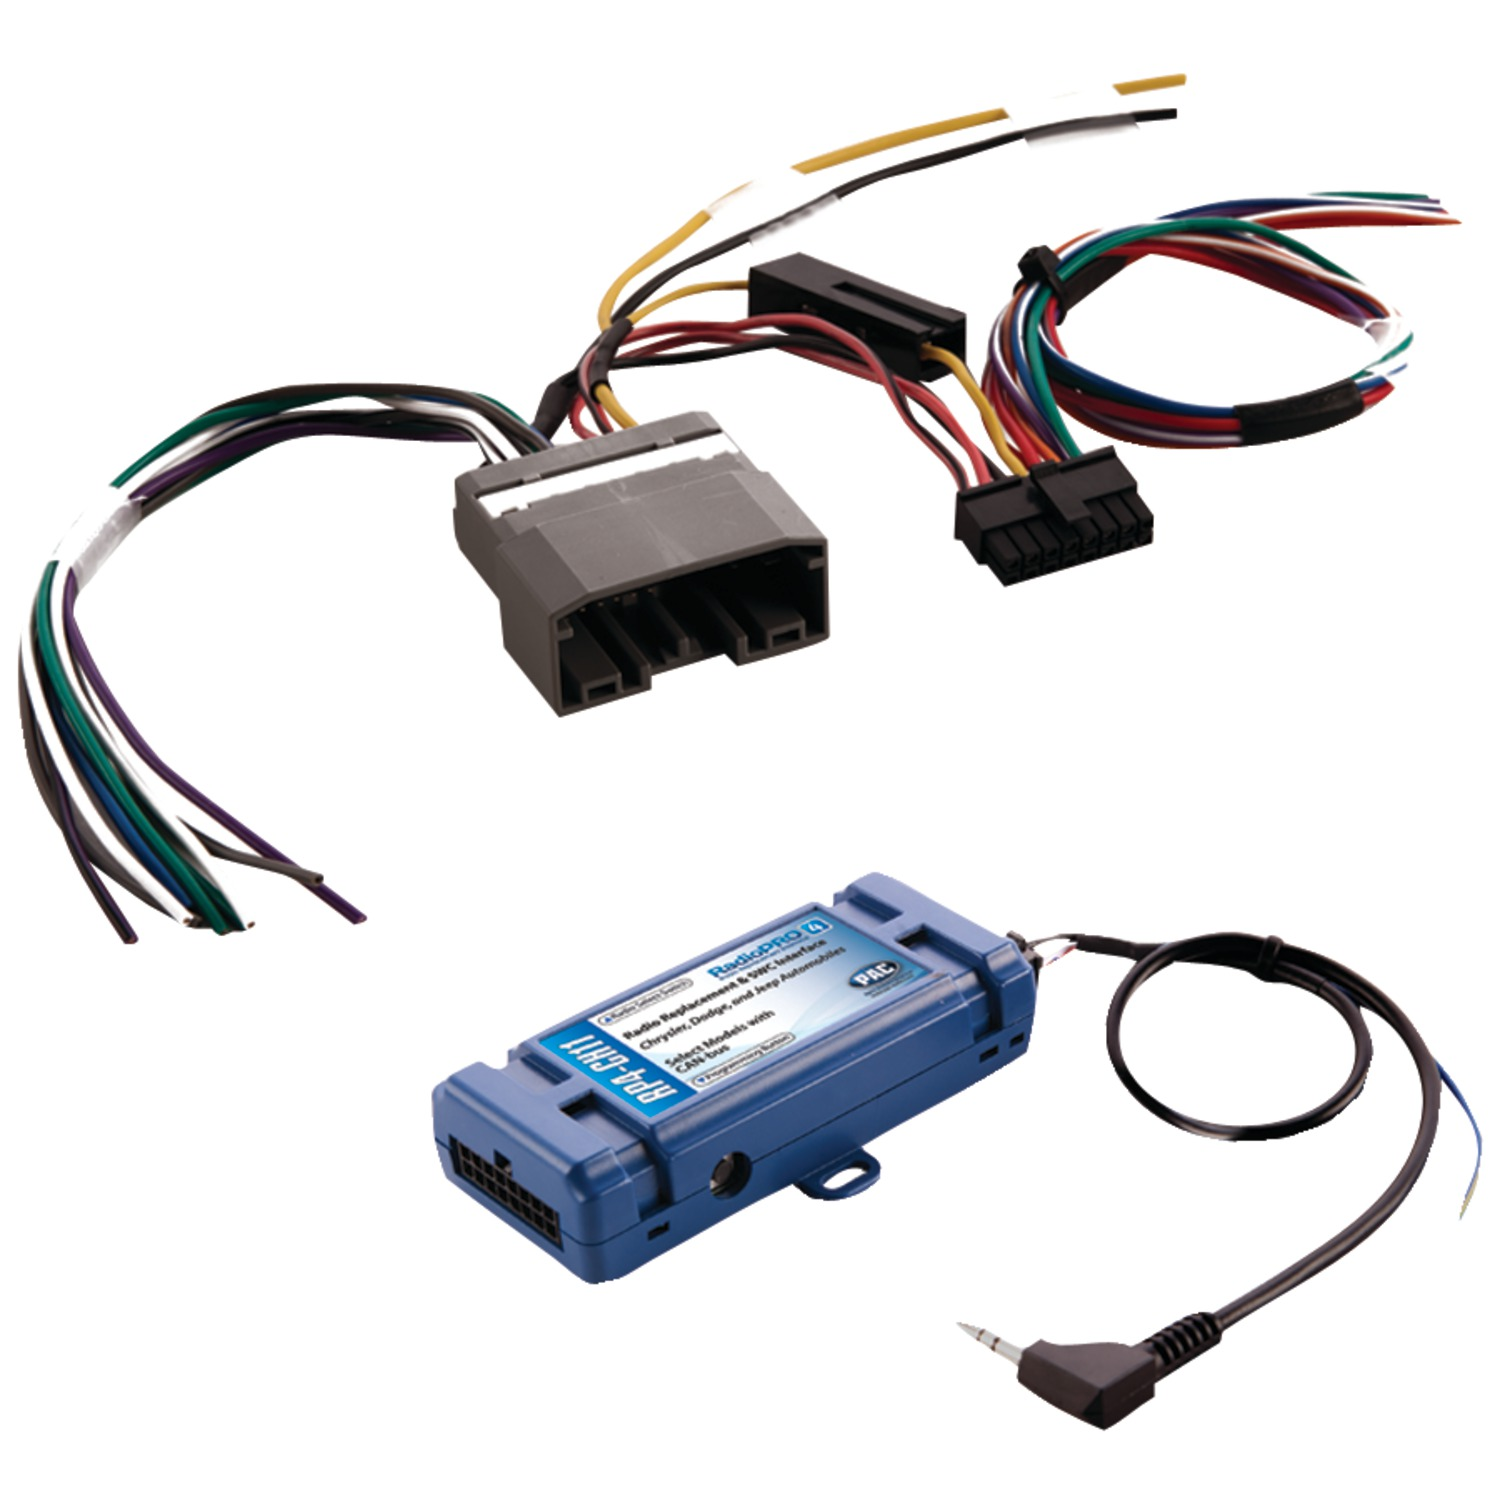 PAC RP4-CH11 | All-in-One Radio Replacement & Steering Wheel Control on jeep knock sensor, jeep visor clip, jeep sport emblem, jeep wire connectors, jeep exhaust leak, jeep relay wiring, jeep condensor, jeep tach, jeep wiring diagram, jeep key switch, jeep exhaust gasket, jeep intake gasket, jeep engine harness, jeep wiring connectors, jeep electrical harness, jeep seat belt harness, jeep vacuum advance, jeep gas sending unit, jeep carrier bearing, jeep bracket,